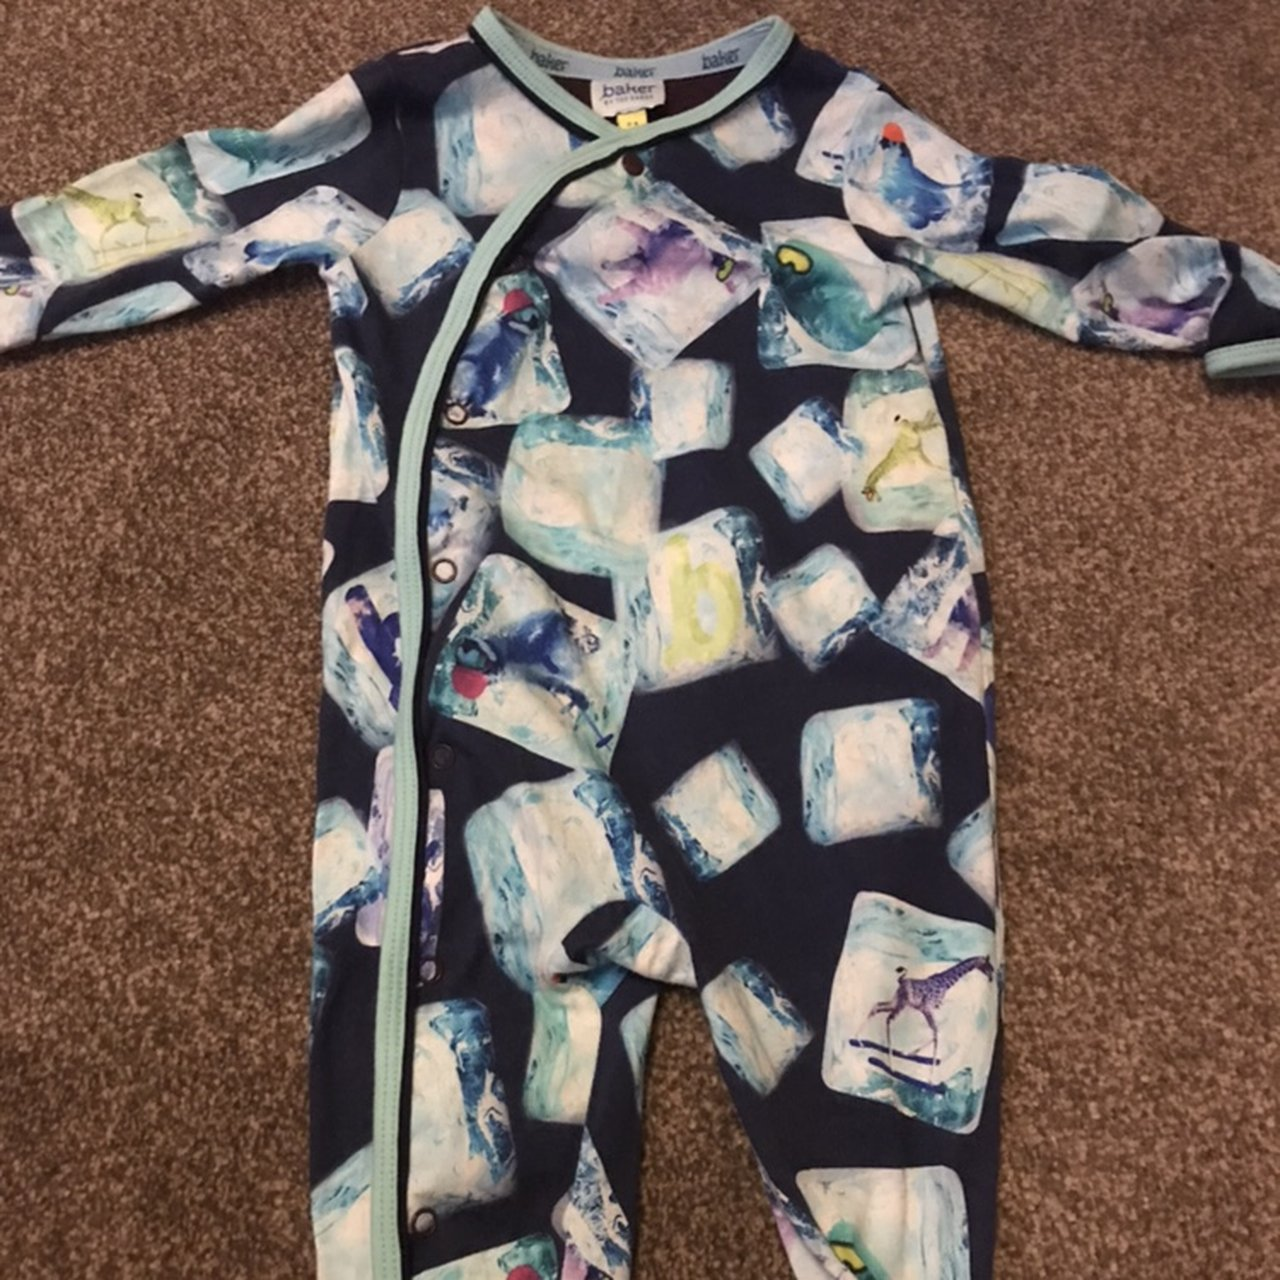 d964c0b58 Ted baker babygrow like new ⭐️Perfect condition ⭐️3-6 for - Depop